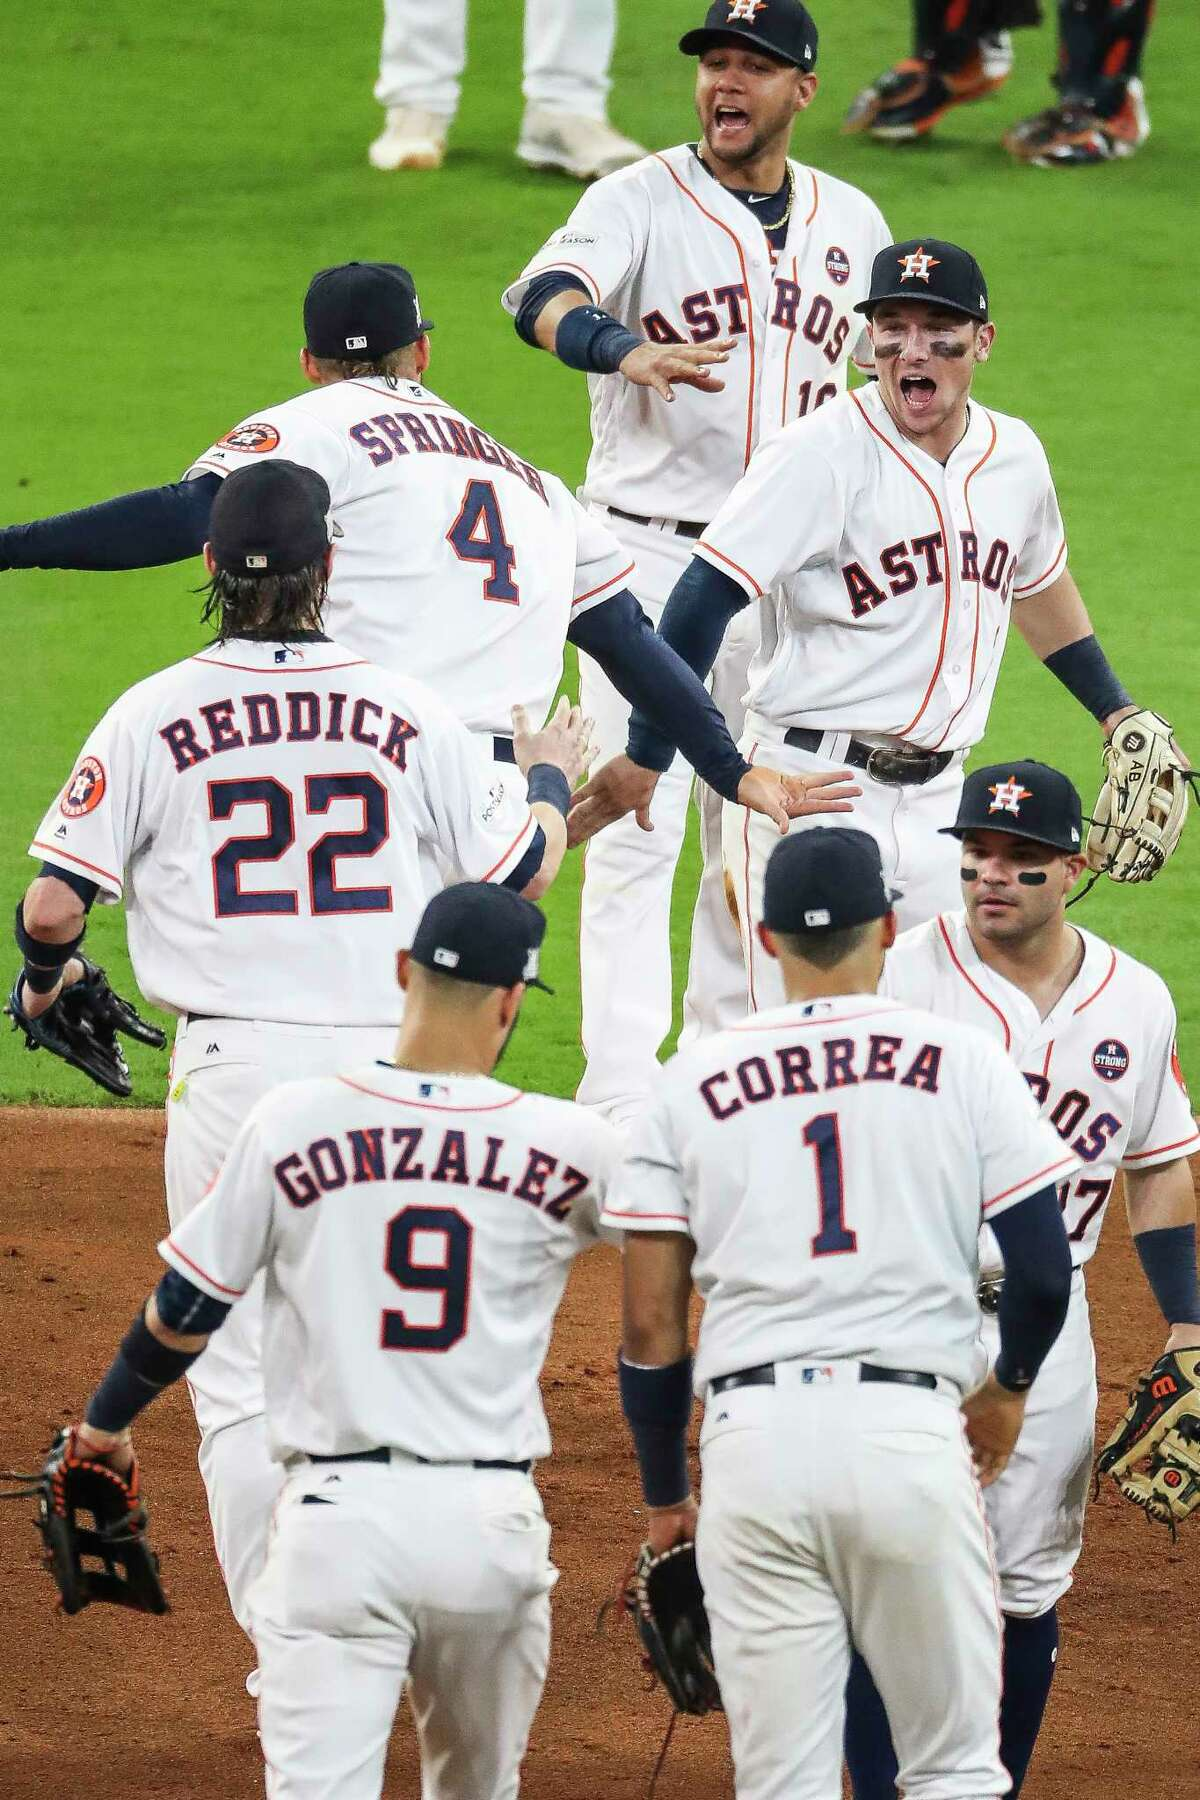 Houston Astros center fielder George Springer and third baseman Alex Bregman high five as they celebrate with teammates after beating the Boston Red Sox 8-2 in the first game of the American League Divisional Series at Minute Maid Park Thursday, Oct. 5, 2017 in Houston.